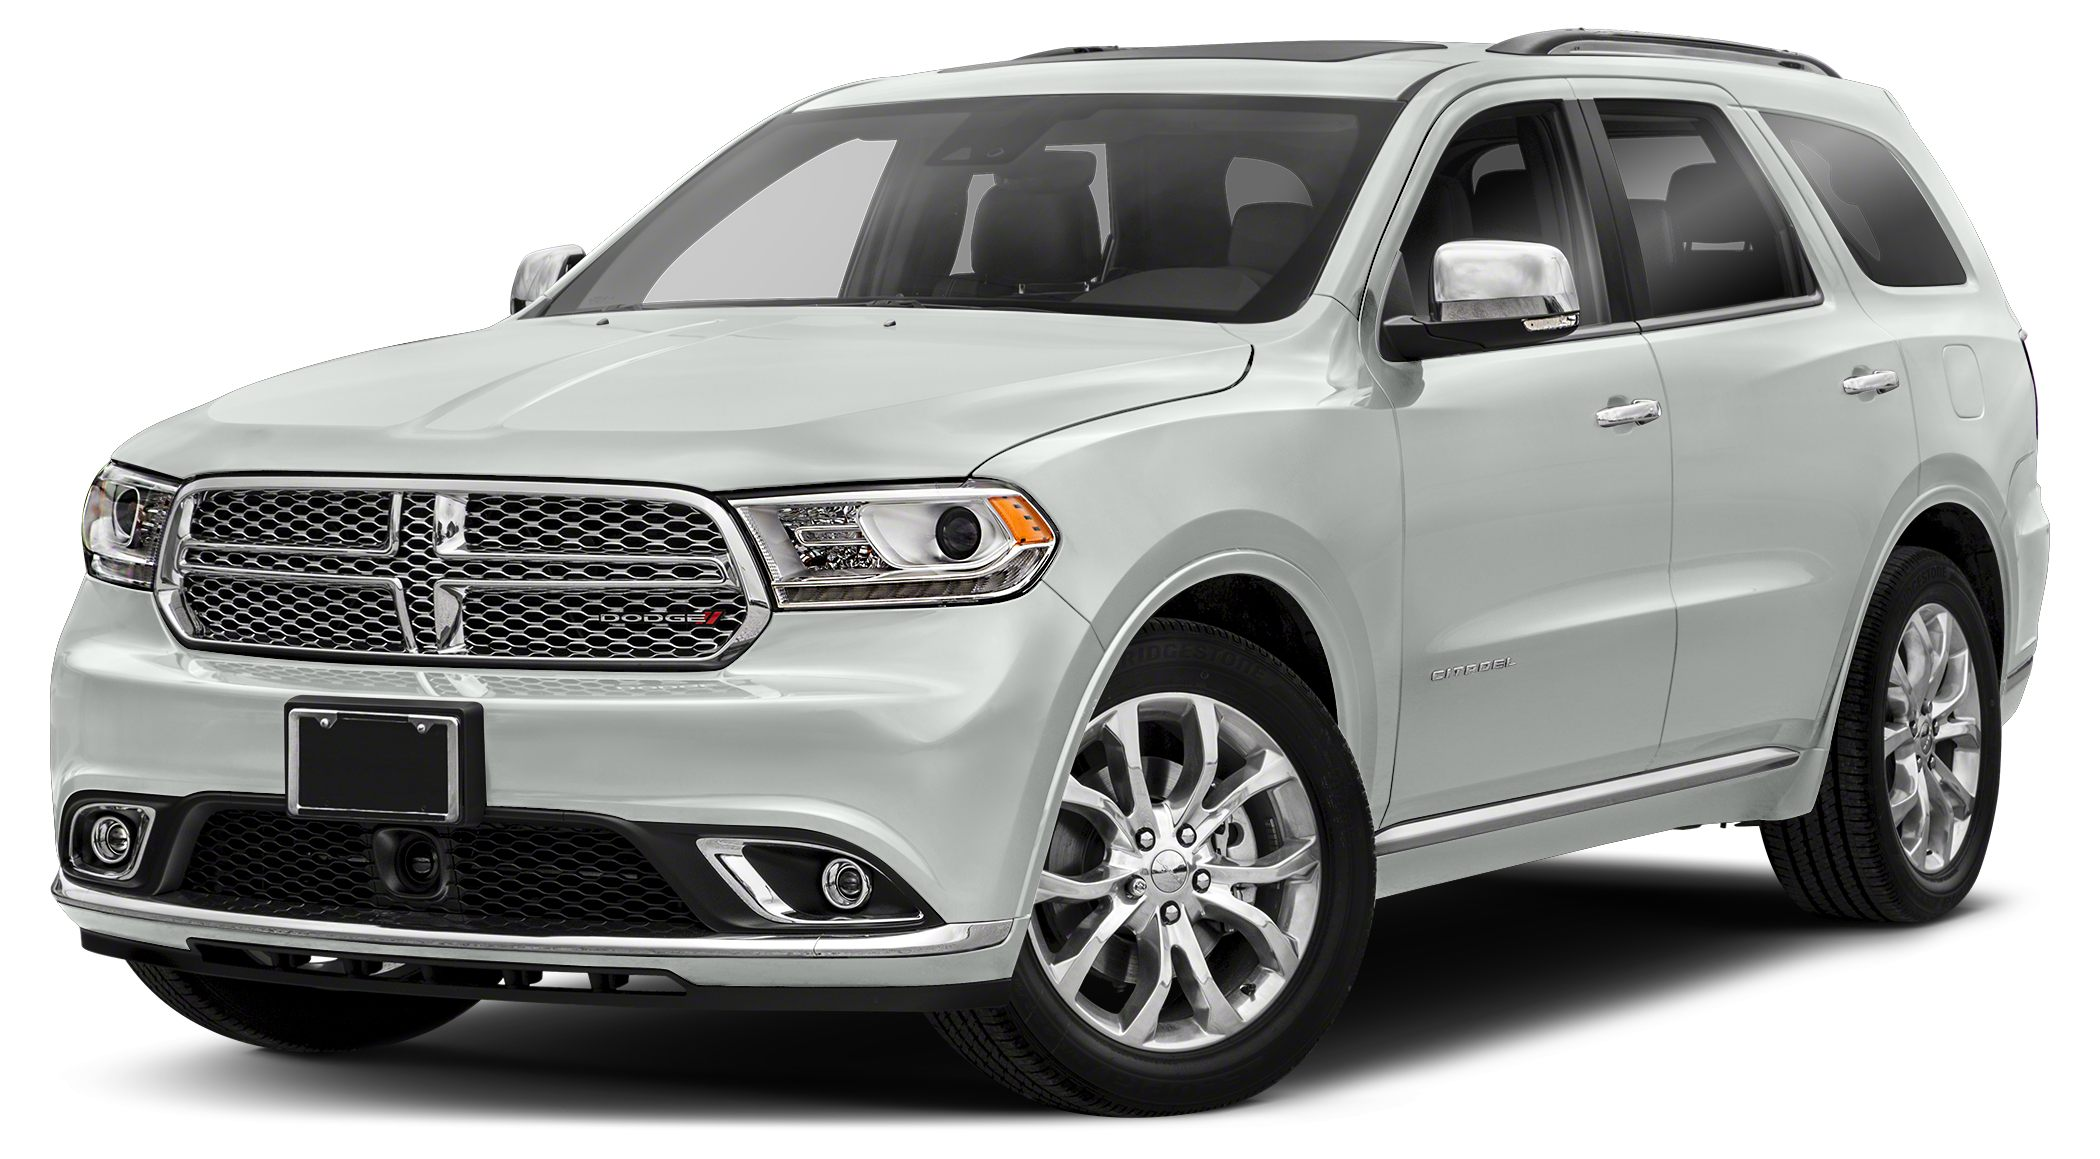 2018 Dodge Durango Citadel SPECIAL ONLINE PRICE INCLUDES 1000 IN REBATES THAT ALL CUSTOMERS QUAL